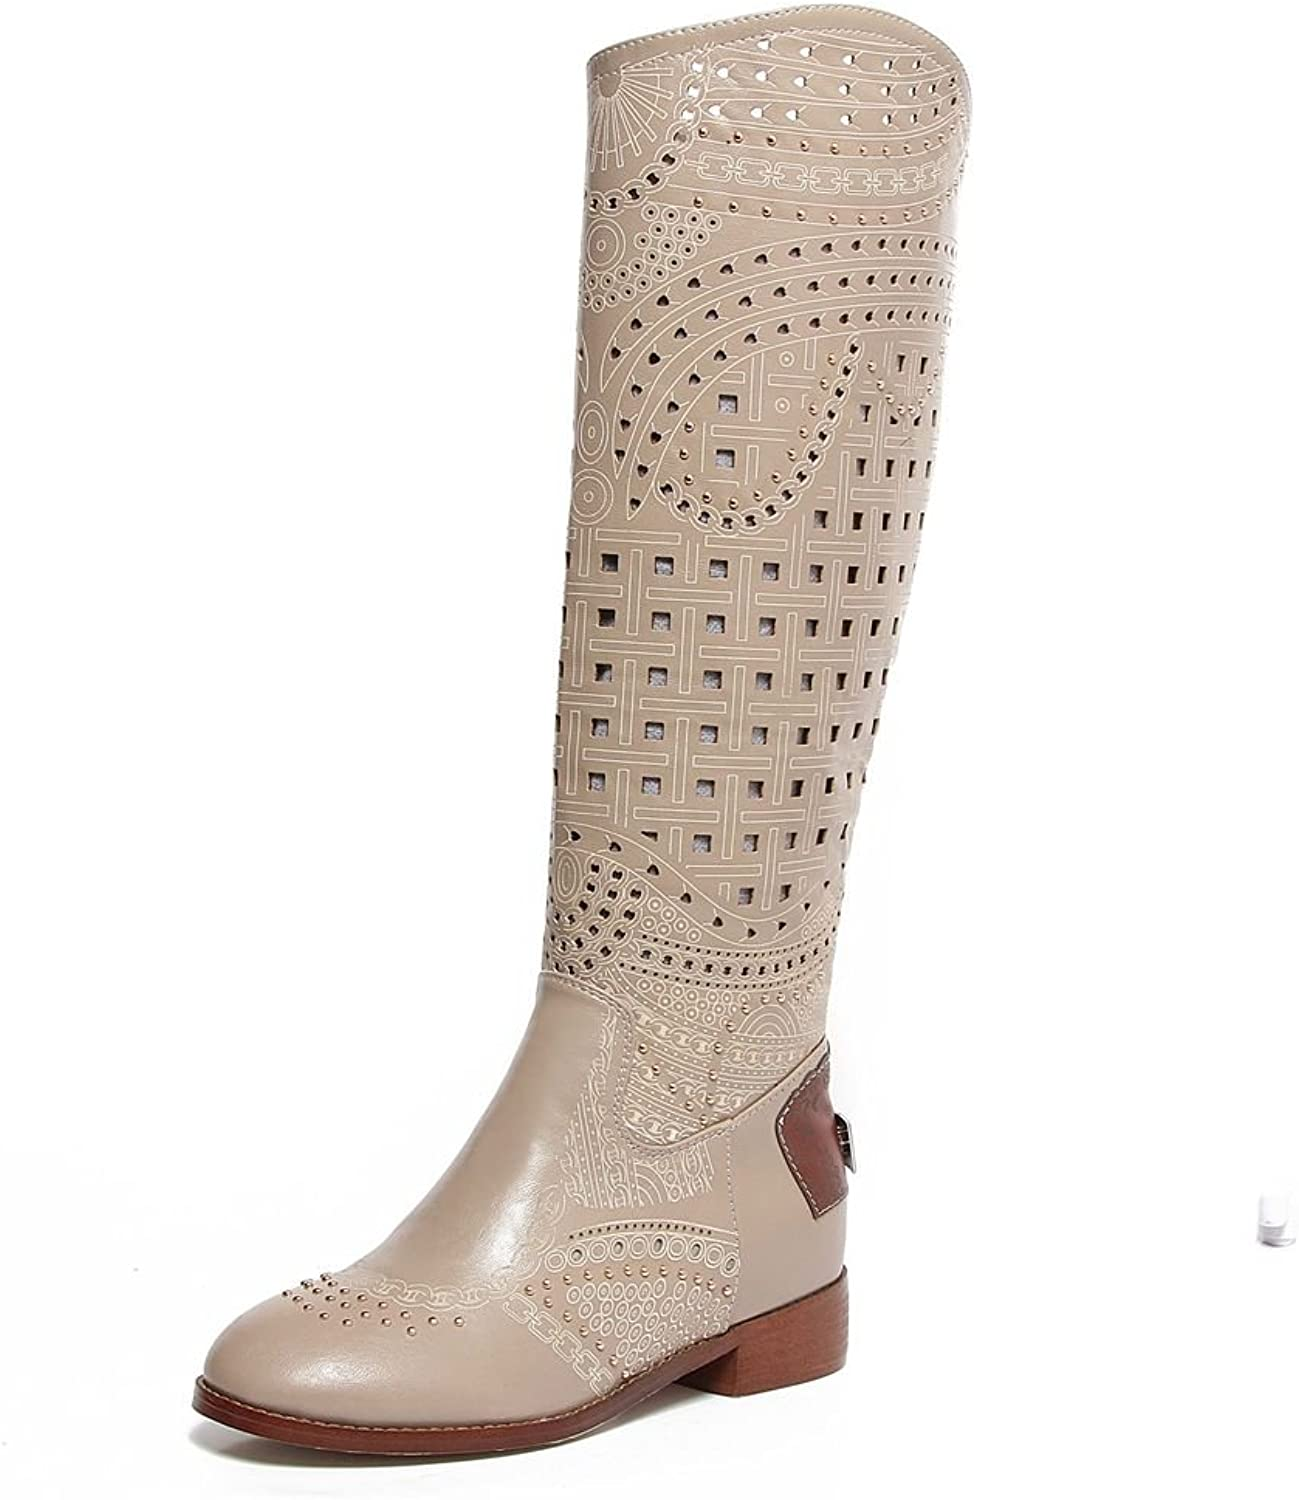 KingRover Women's Fashion Hollow Studded Ornamented Leather Boots